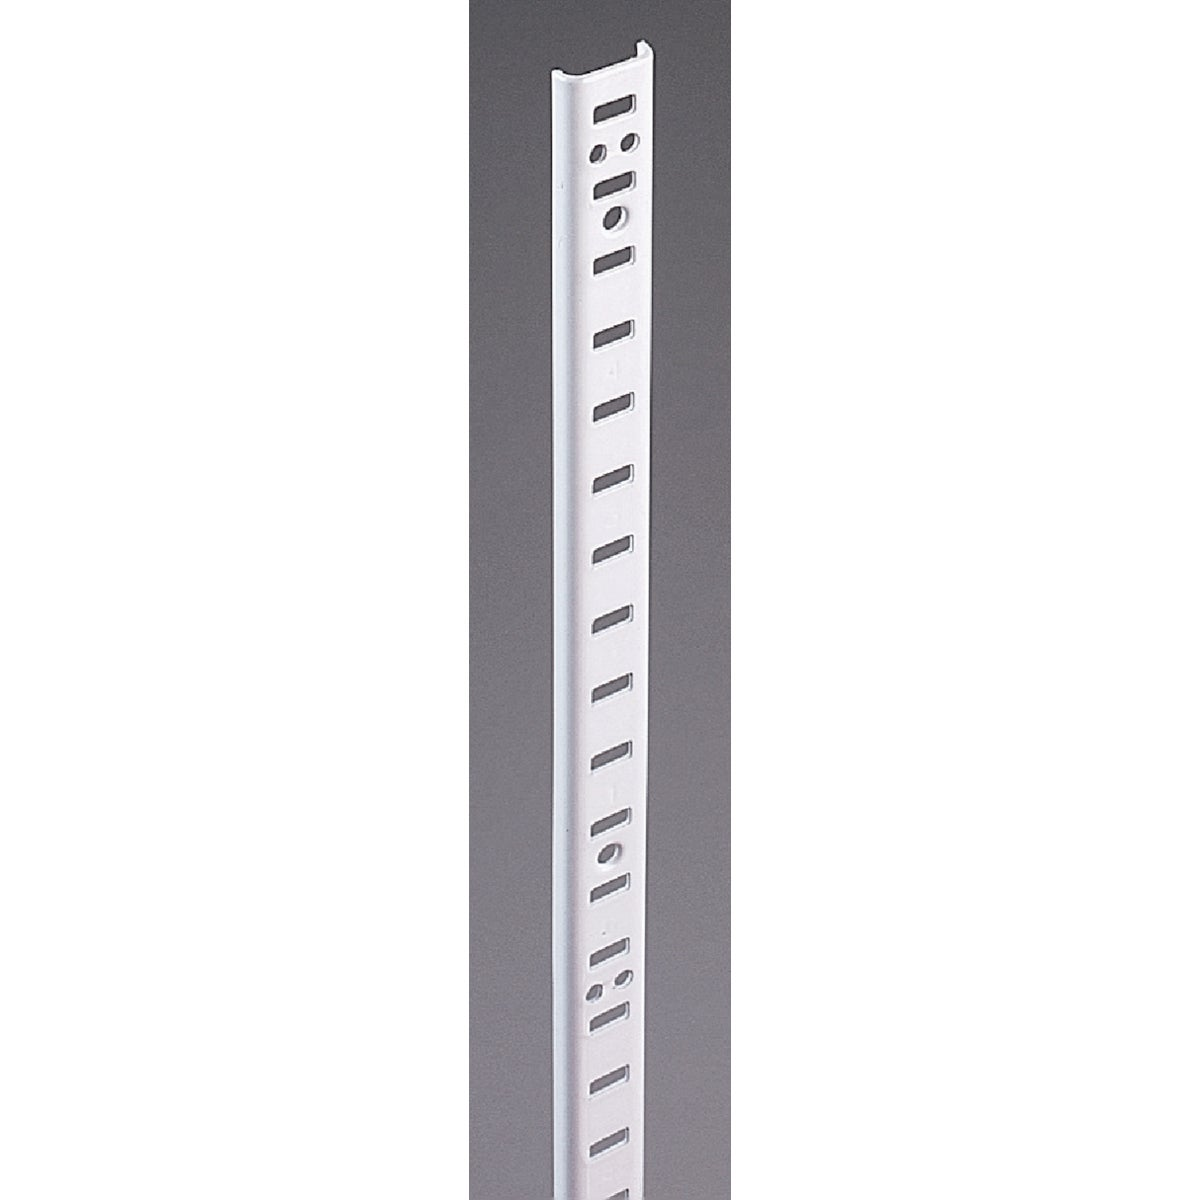 "ZN 48"" PILASTER STANDARD - PK255ZC 48 by Knape & Vogt Mfg Co"